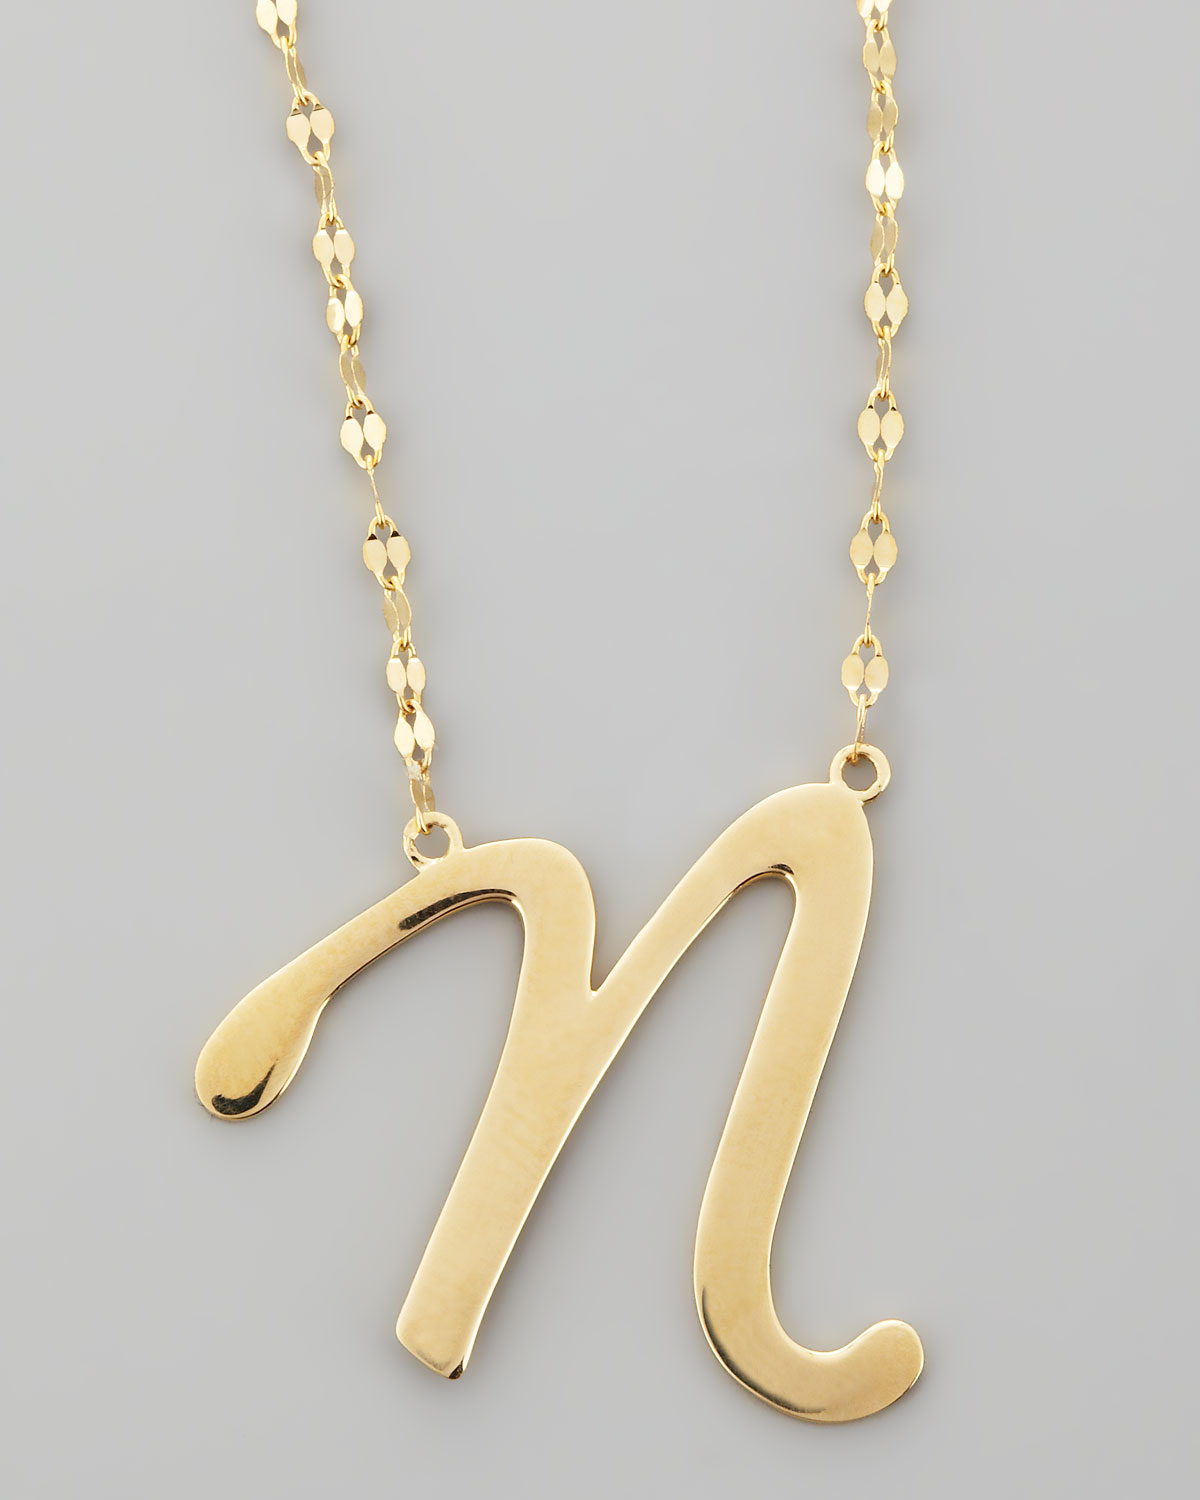 Lana jewelry 14k gold letter necklace in gold lyst for 14k gold letter necklace